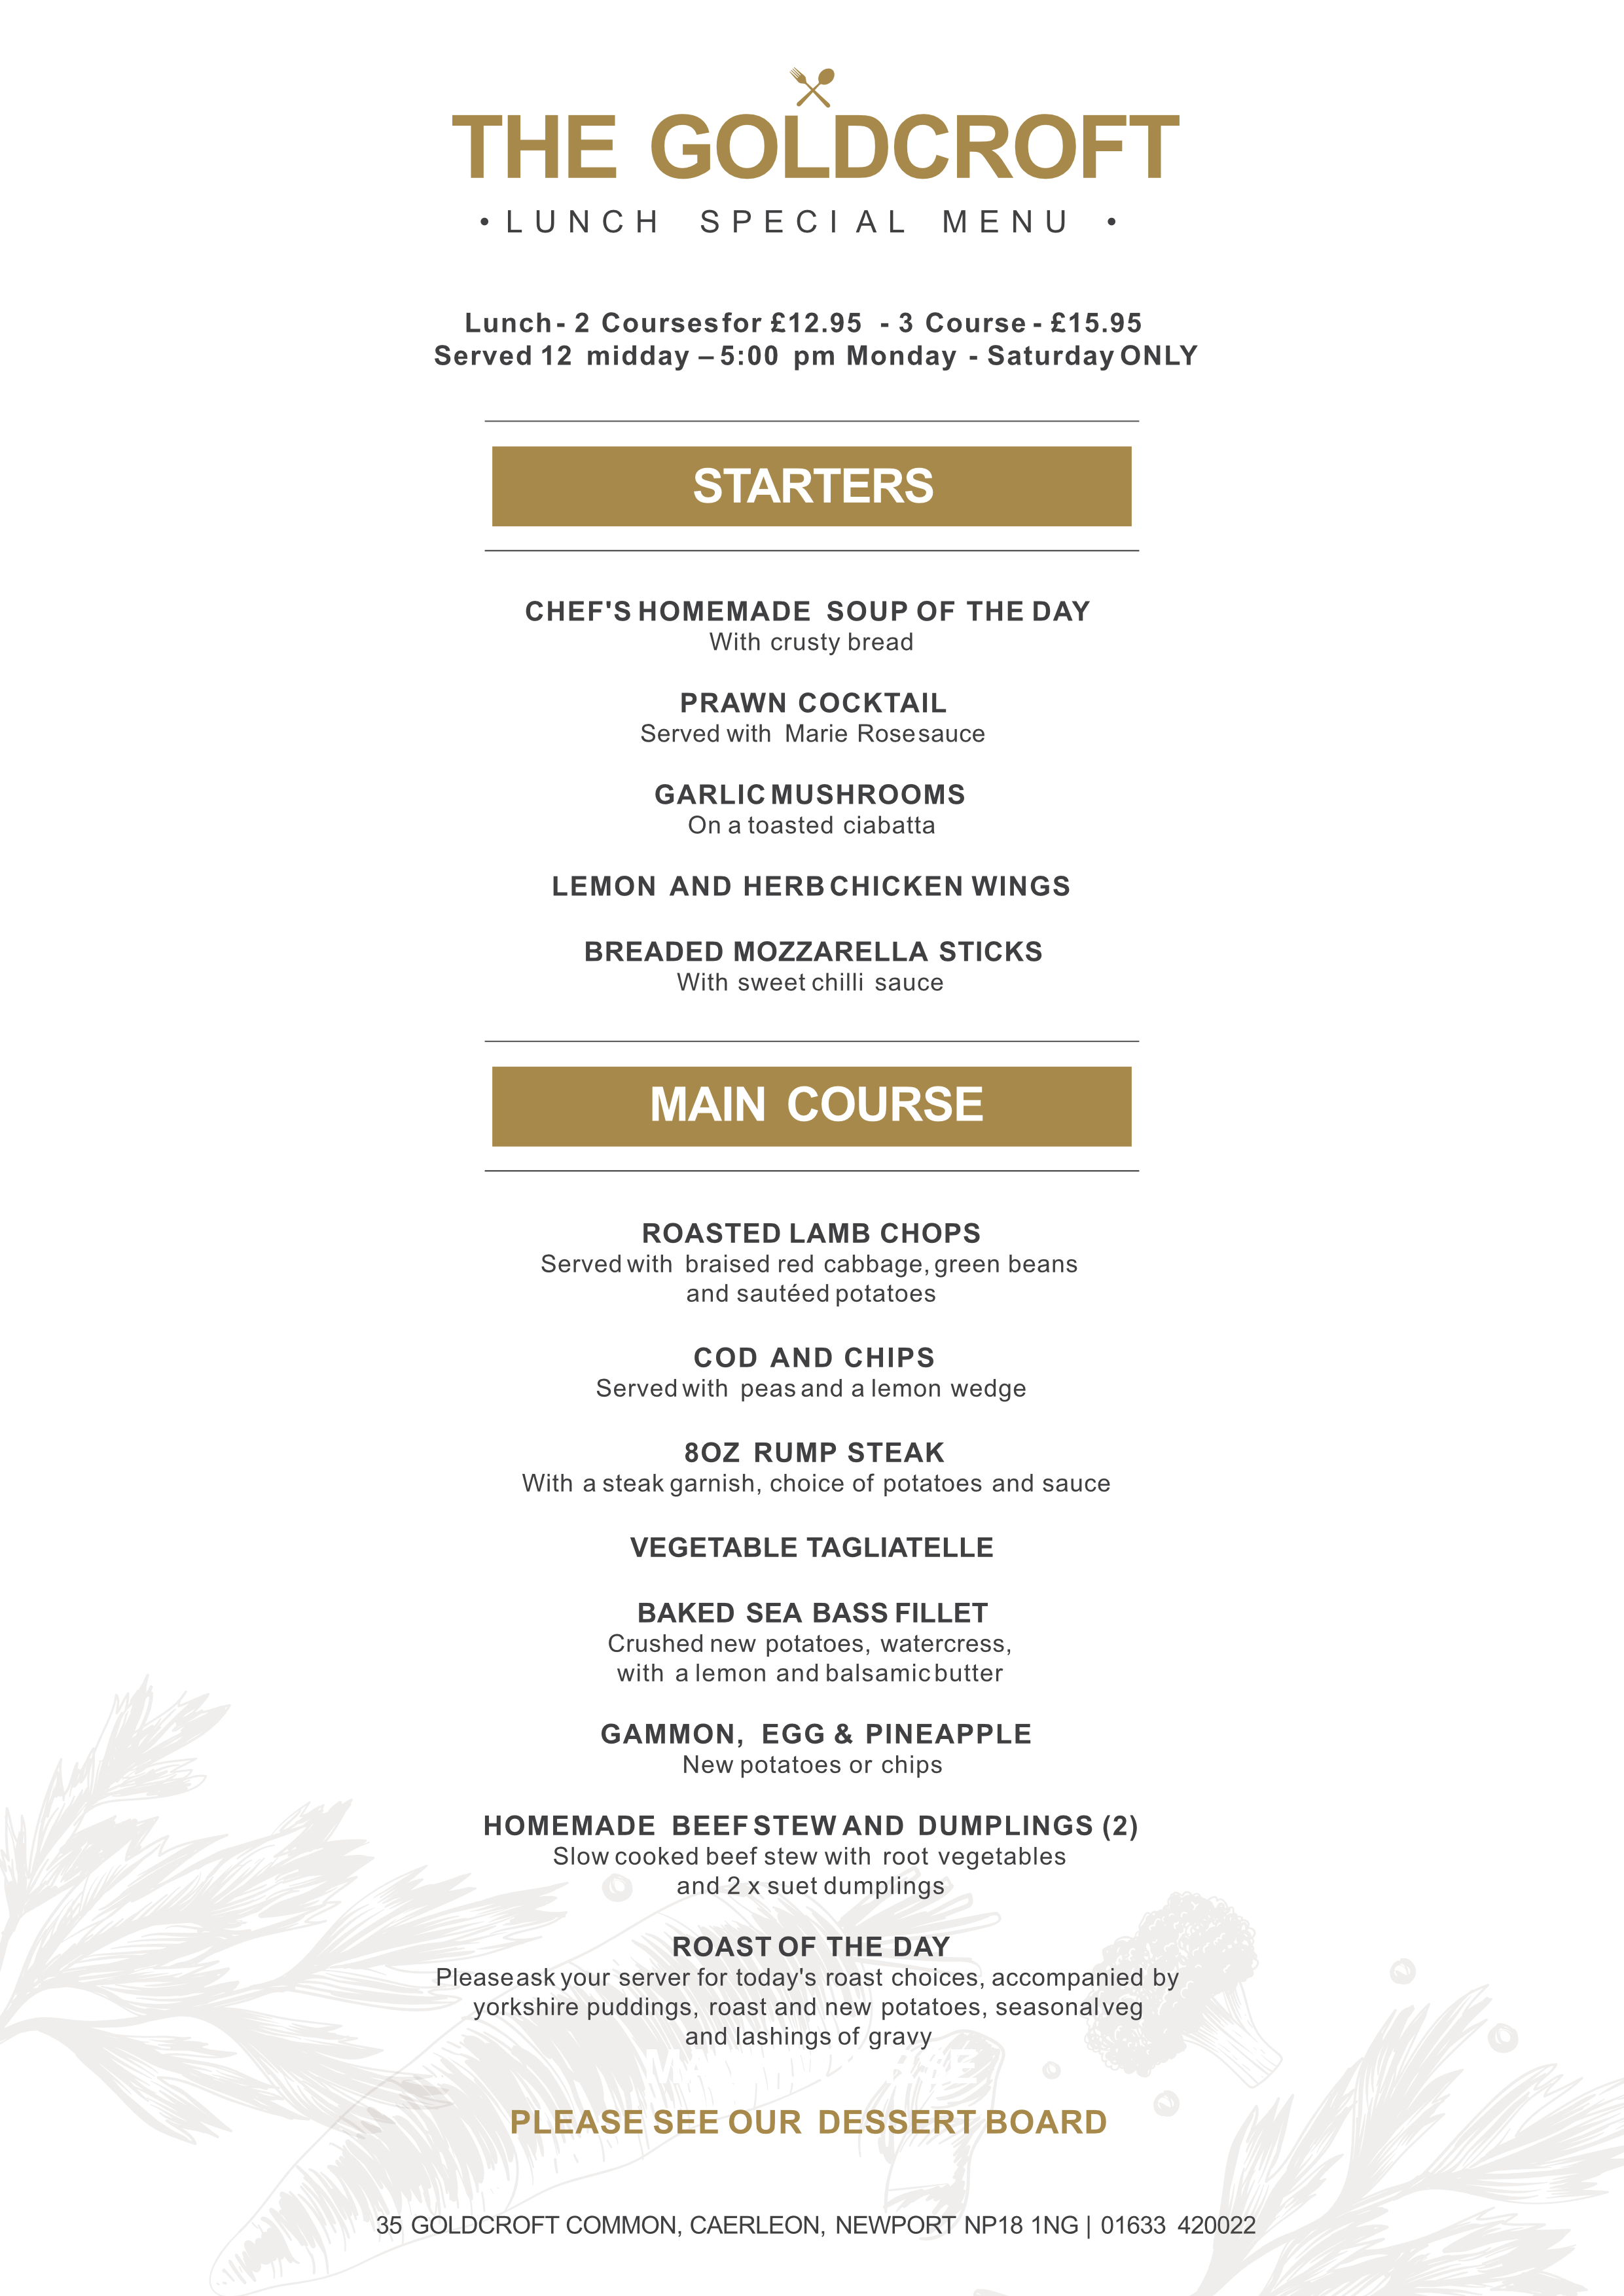 Goldcroft A5 Lunch Special Menu (1)